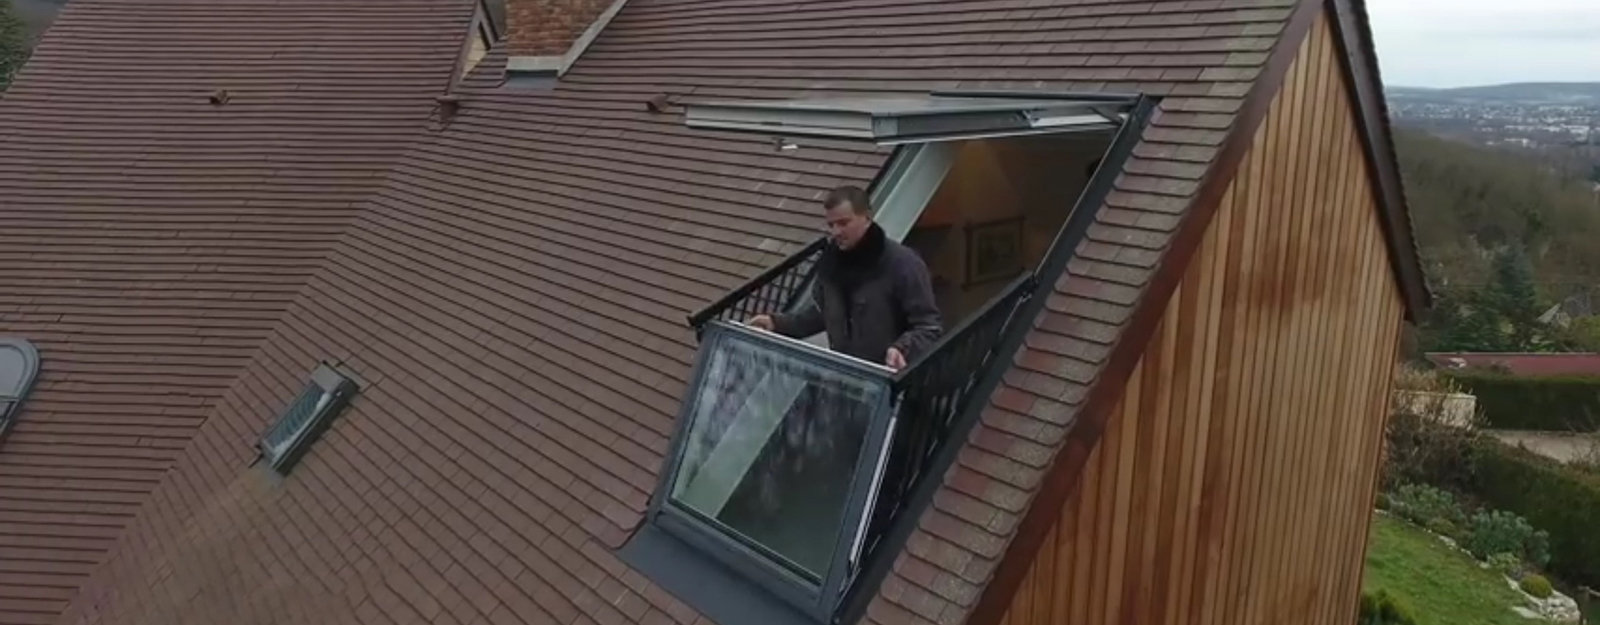 a roof window that